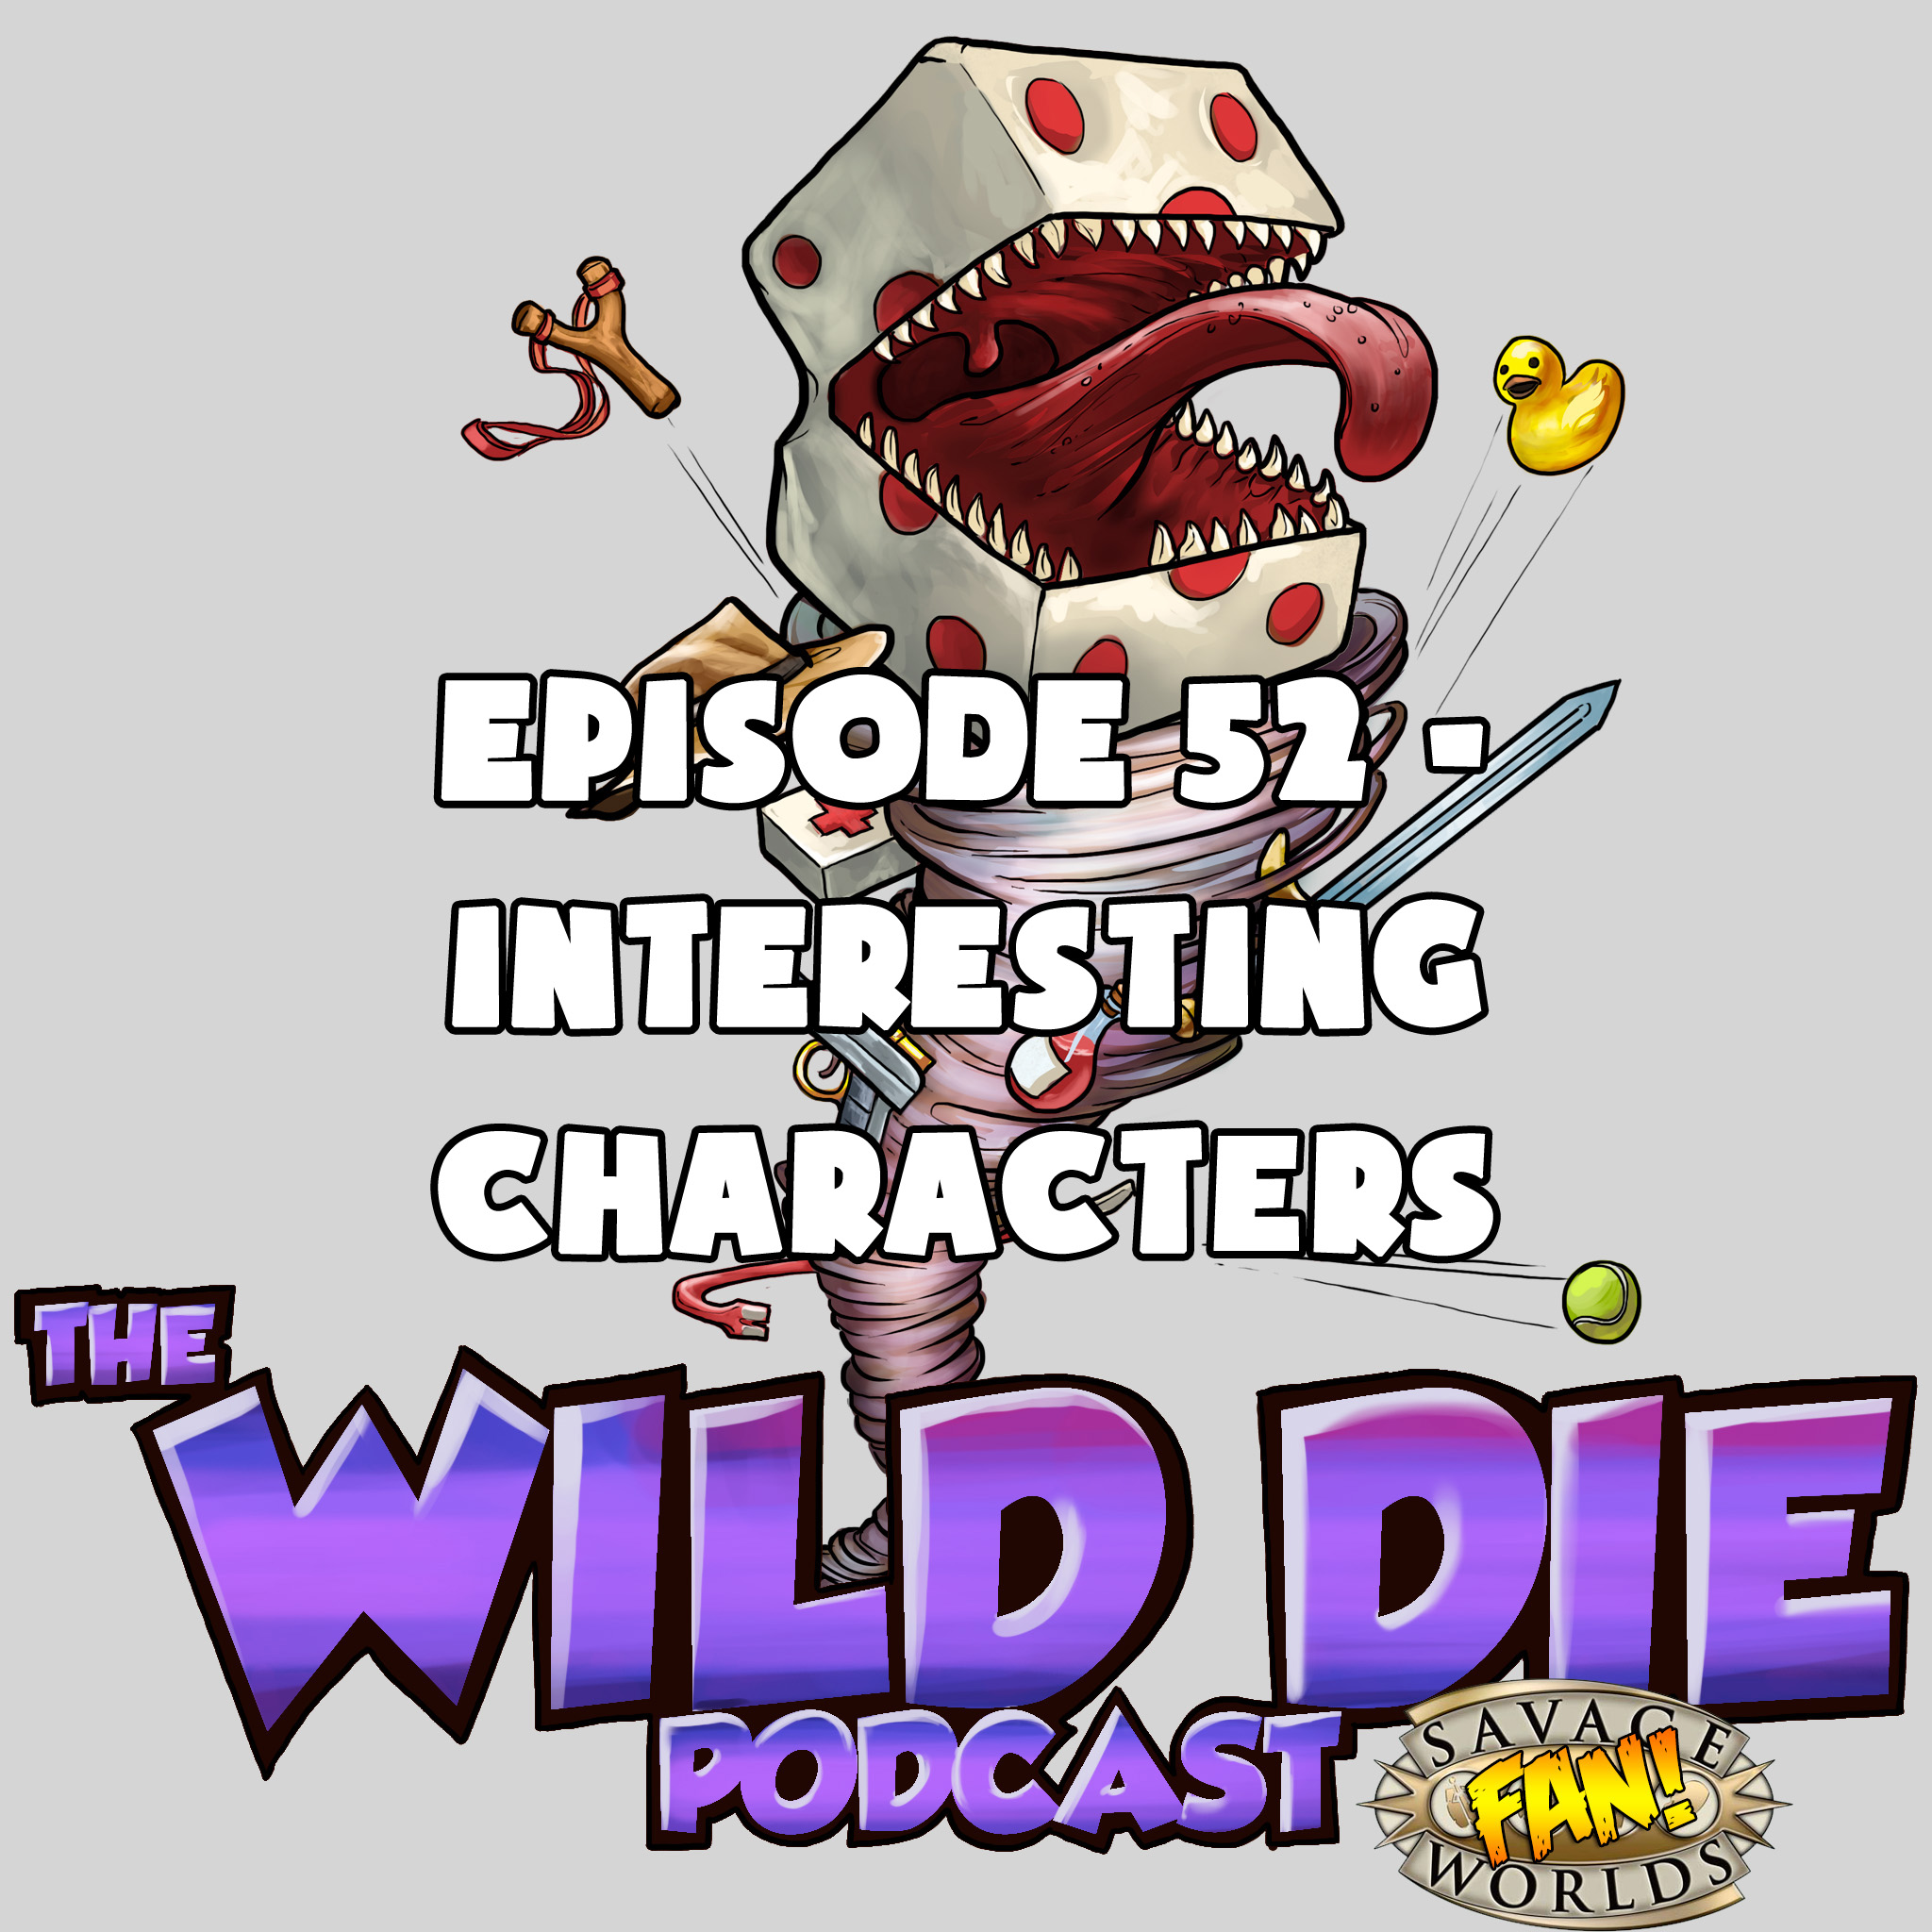 Episode 52 - Interesting Characters